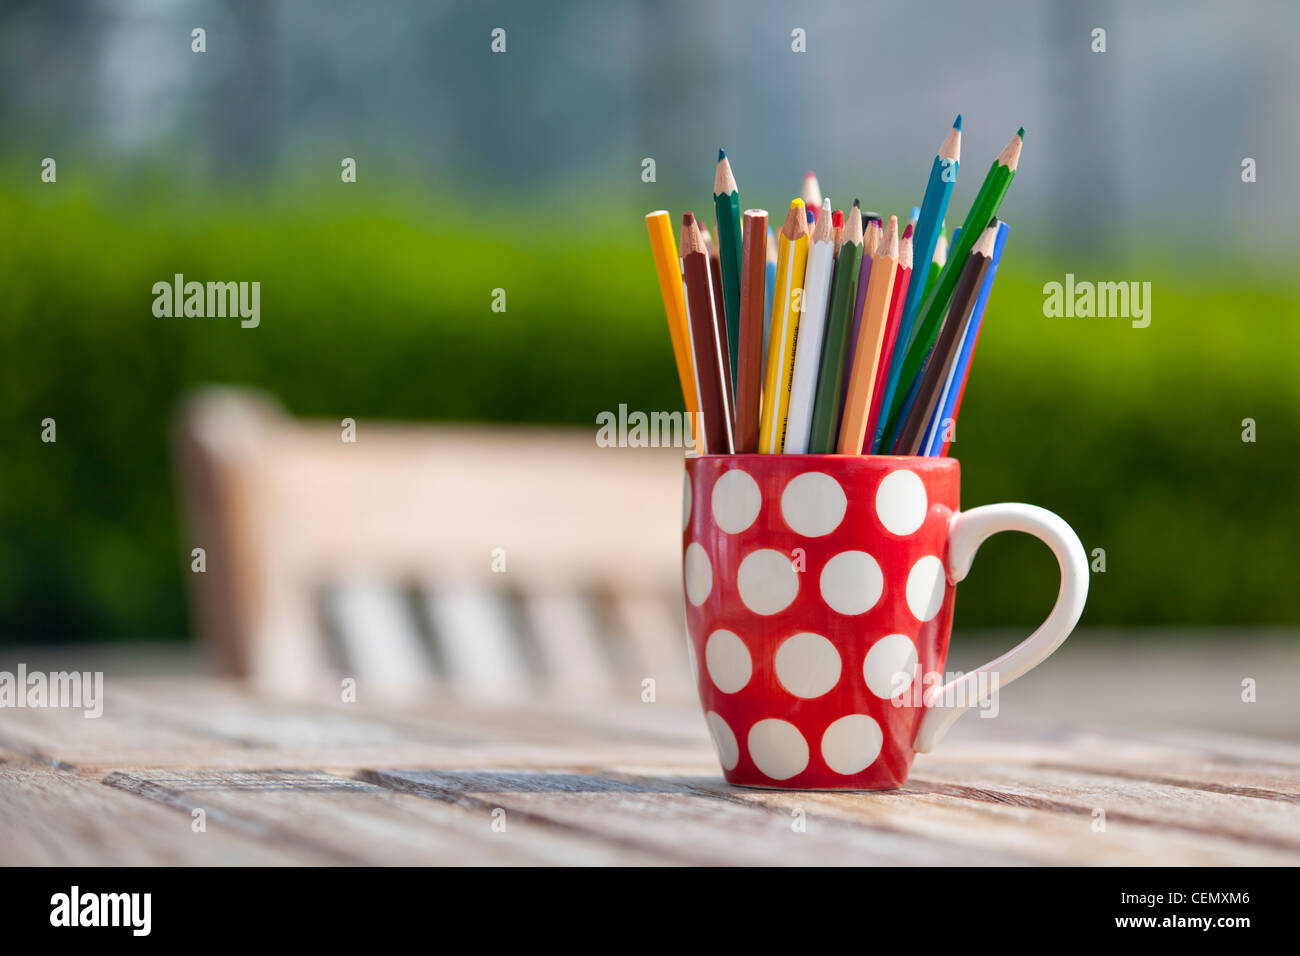 coloring colouring pencils in a red and white polka dot mug outside ...